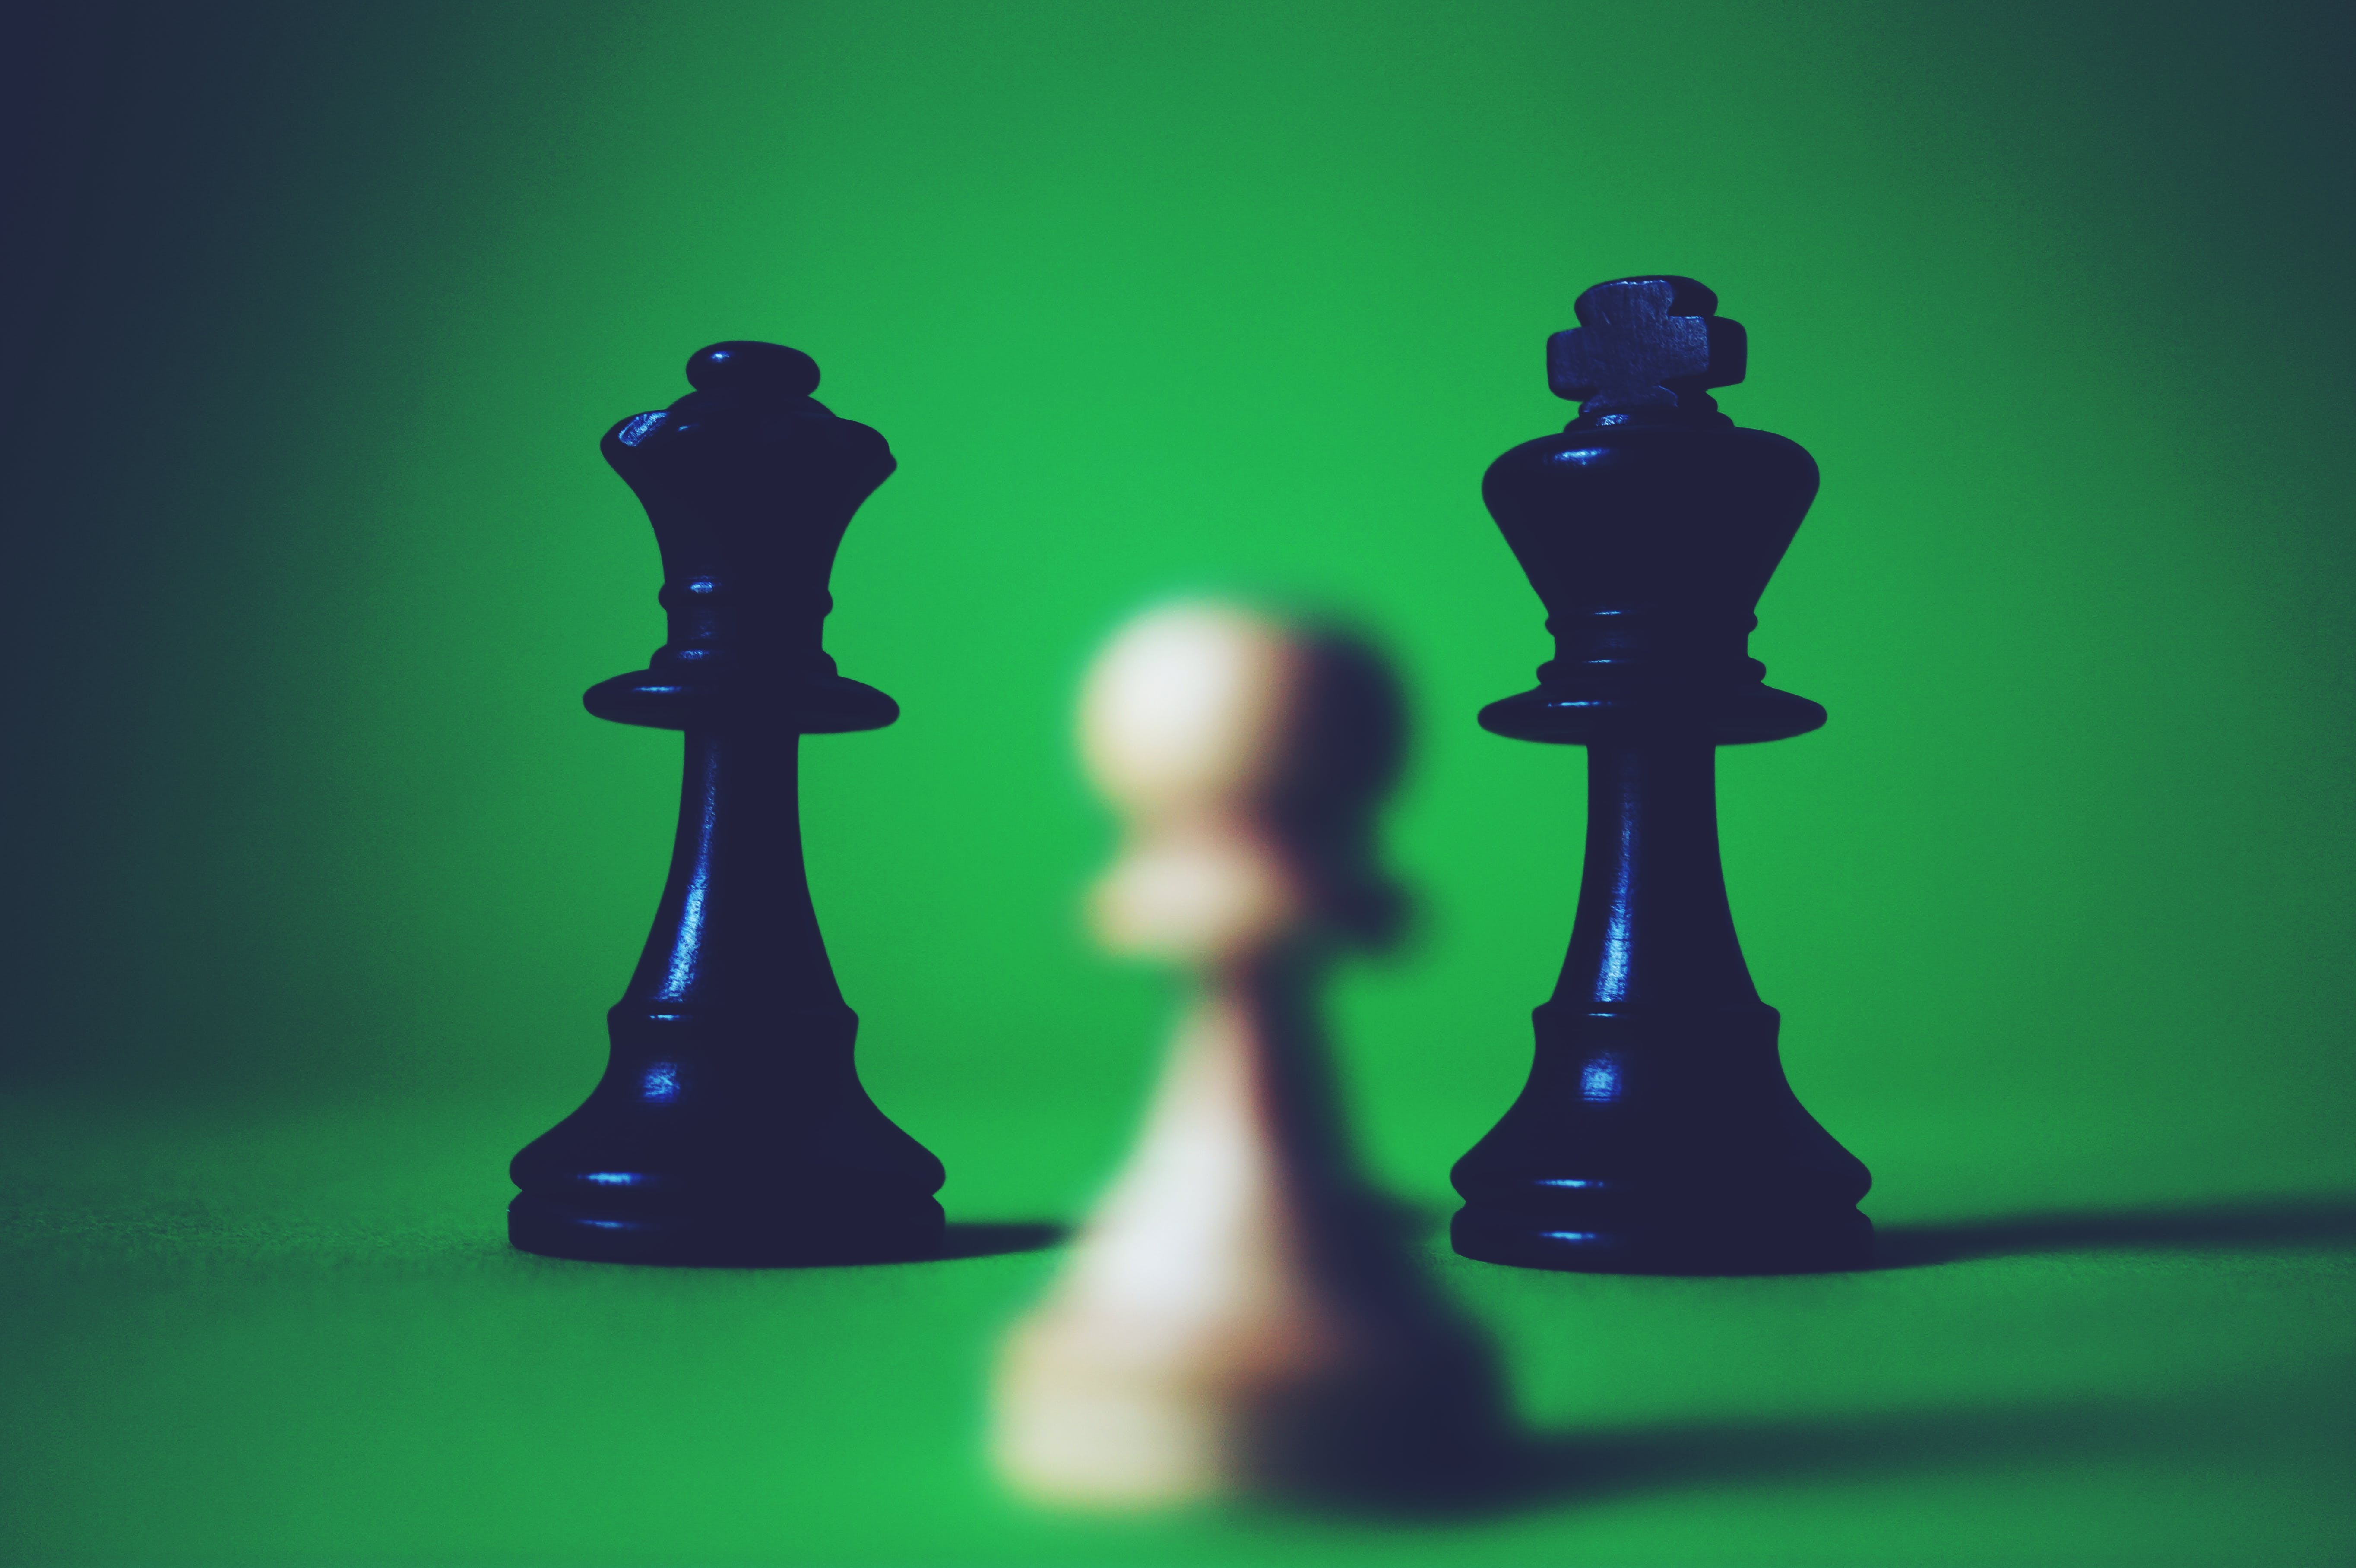 Two Black Queen and King Chess Pieces